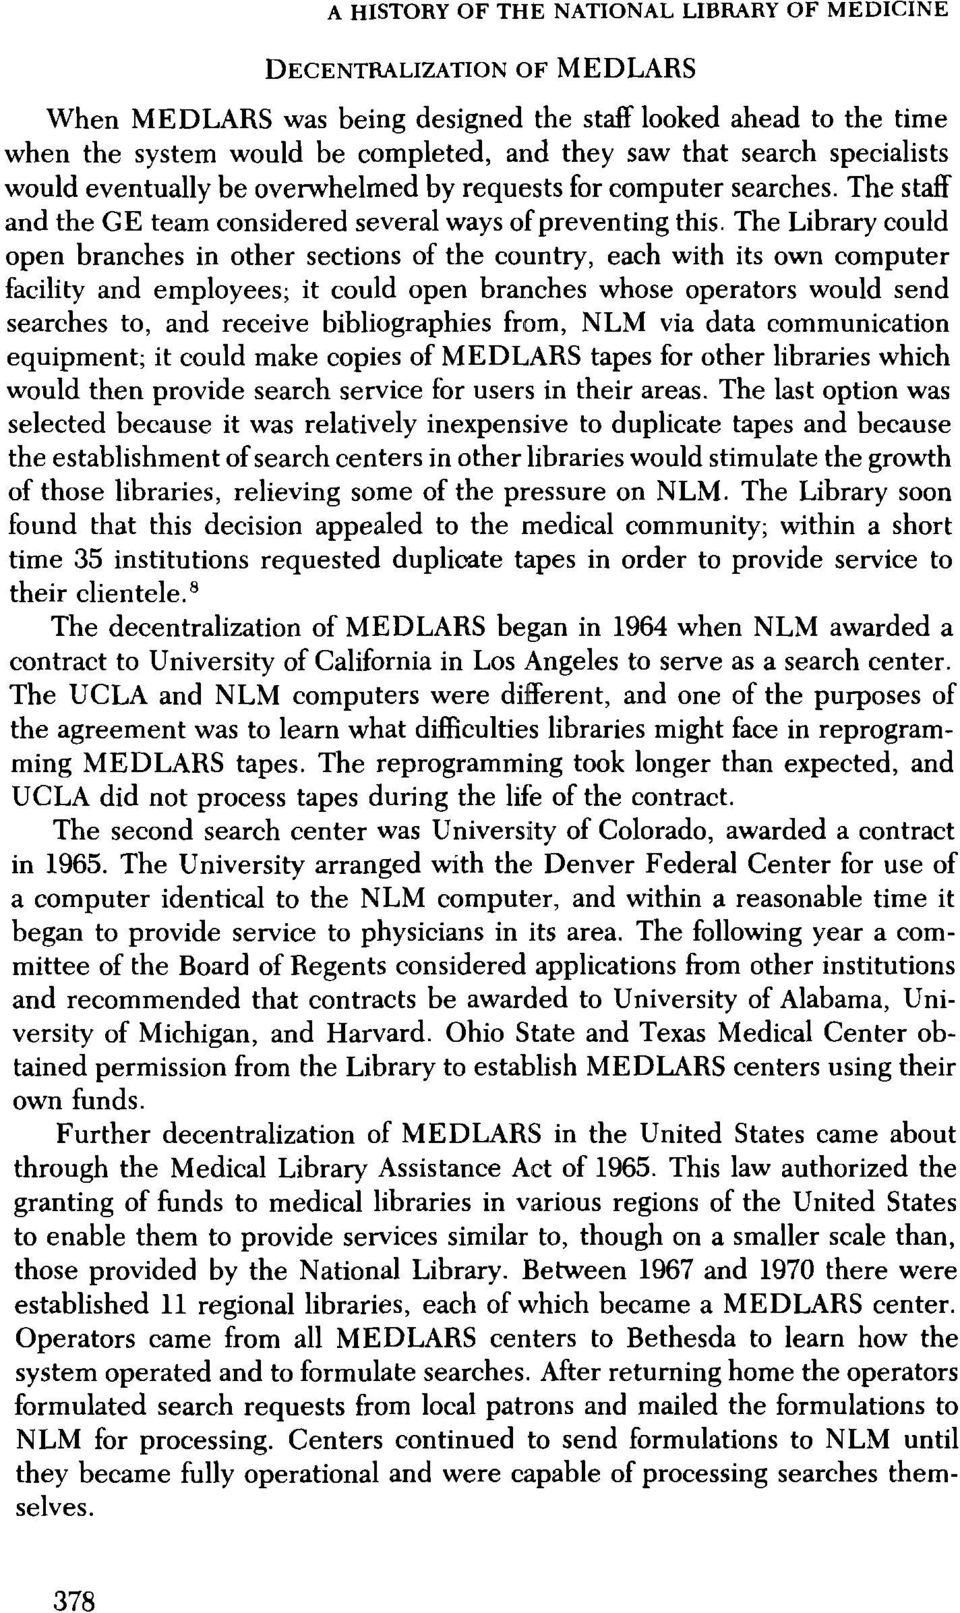 The Library could open branches in other sections of the country, each with its own computer facility and employees; it could open branches whose operators would send searches to, and receive